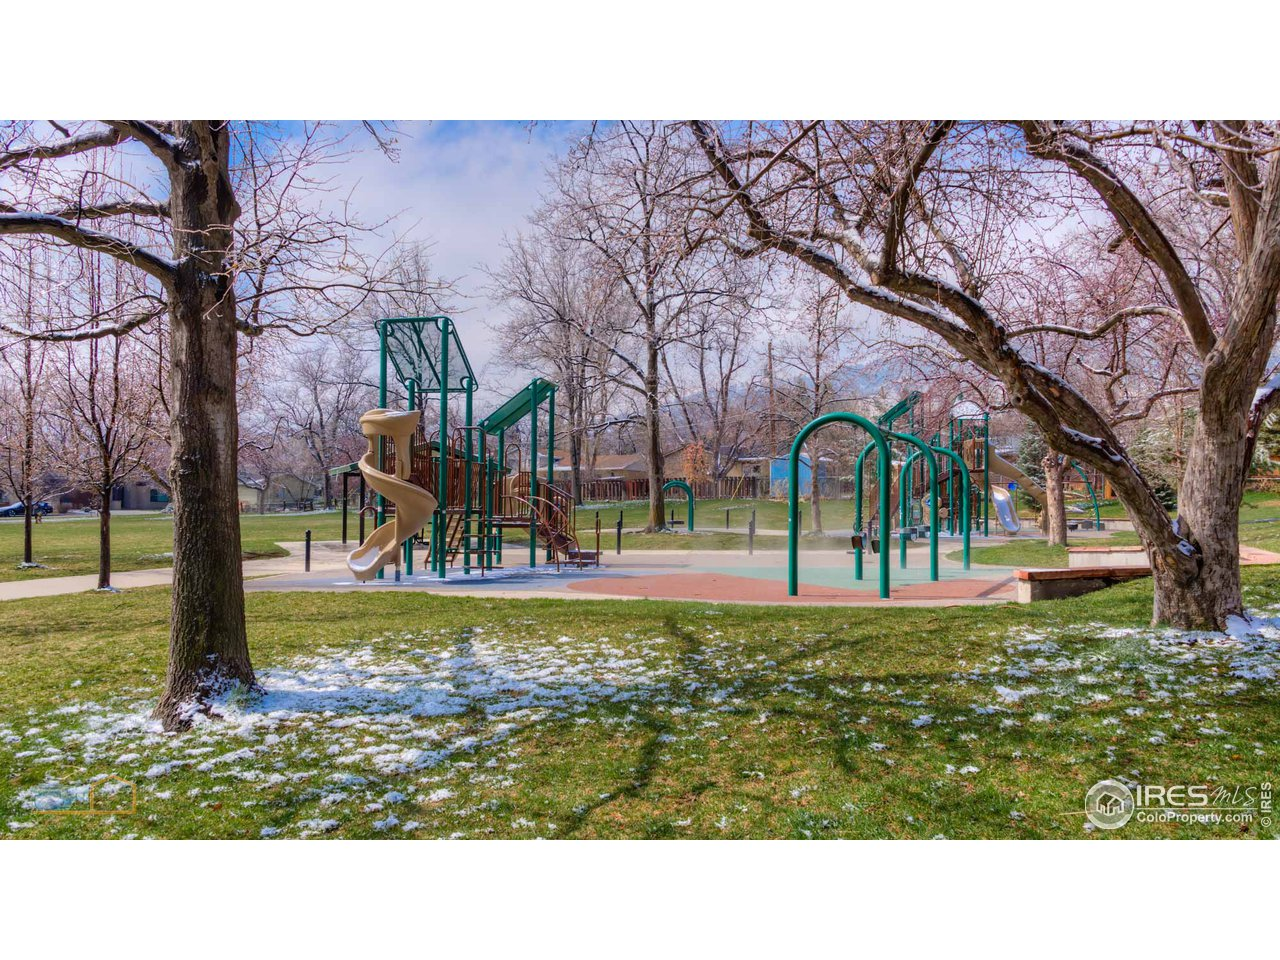 Play area of Melody Park.